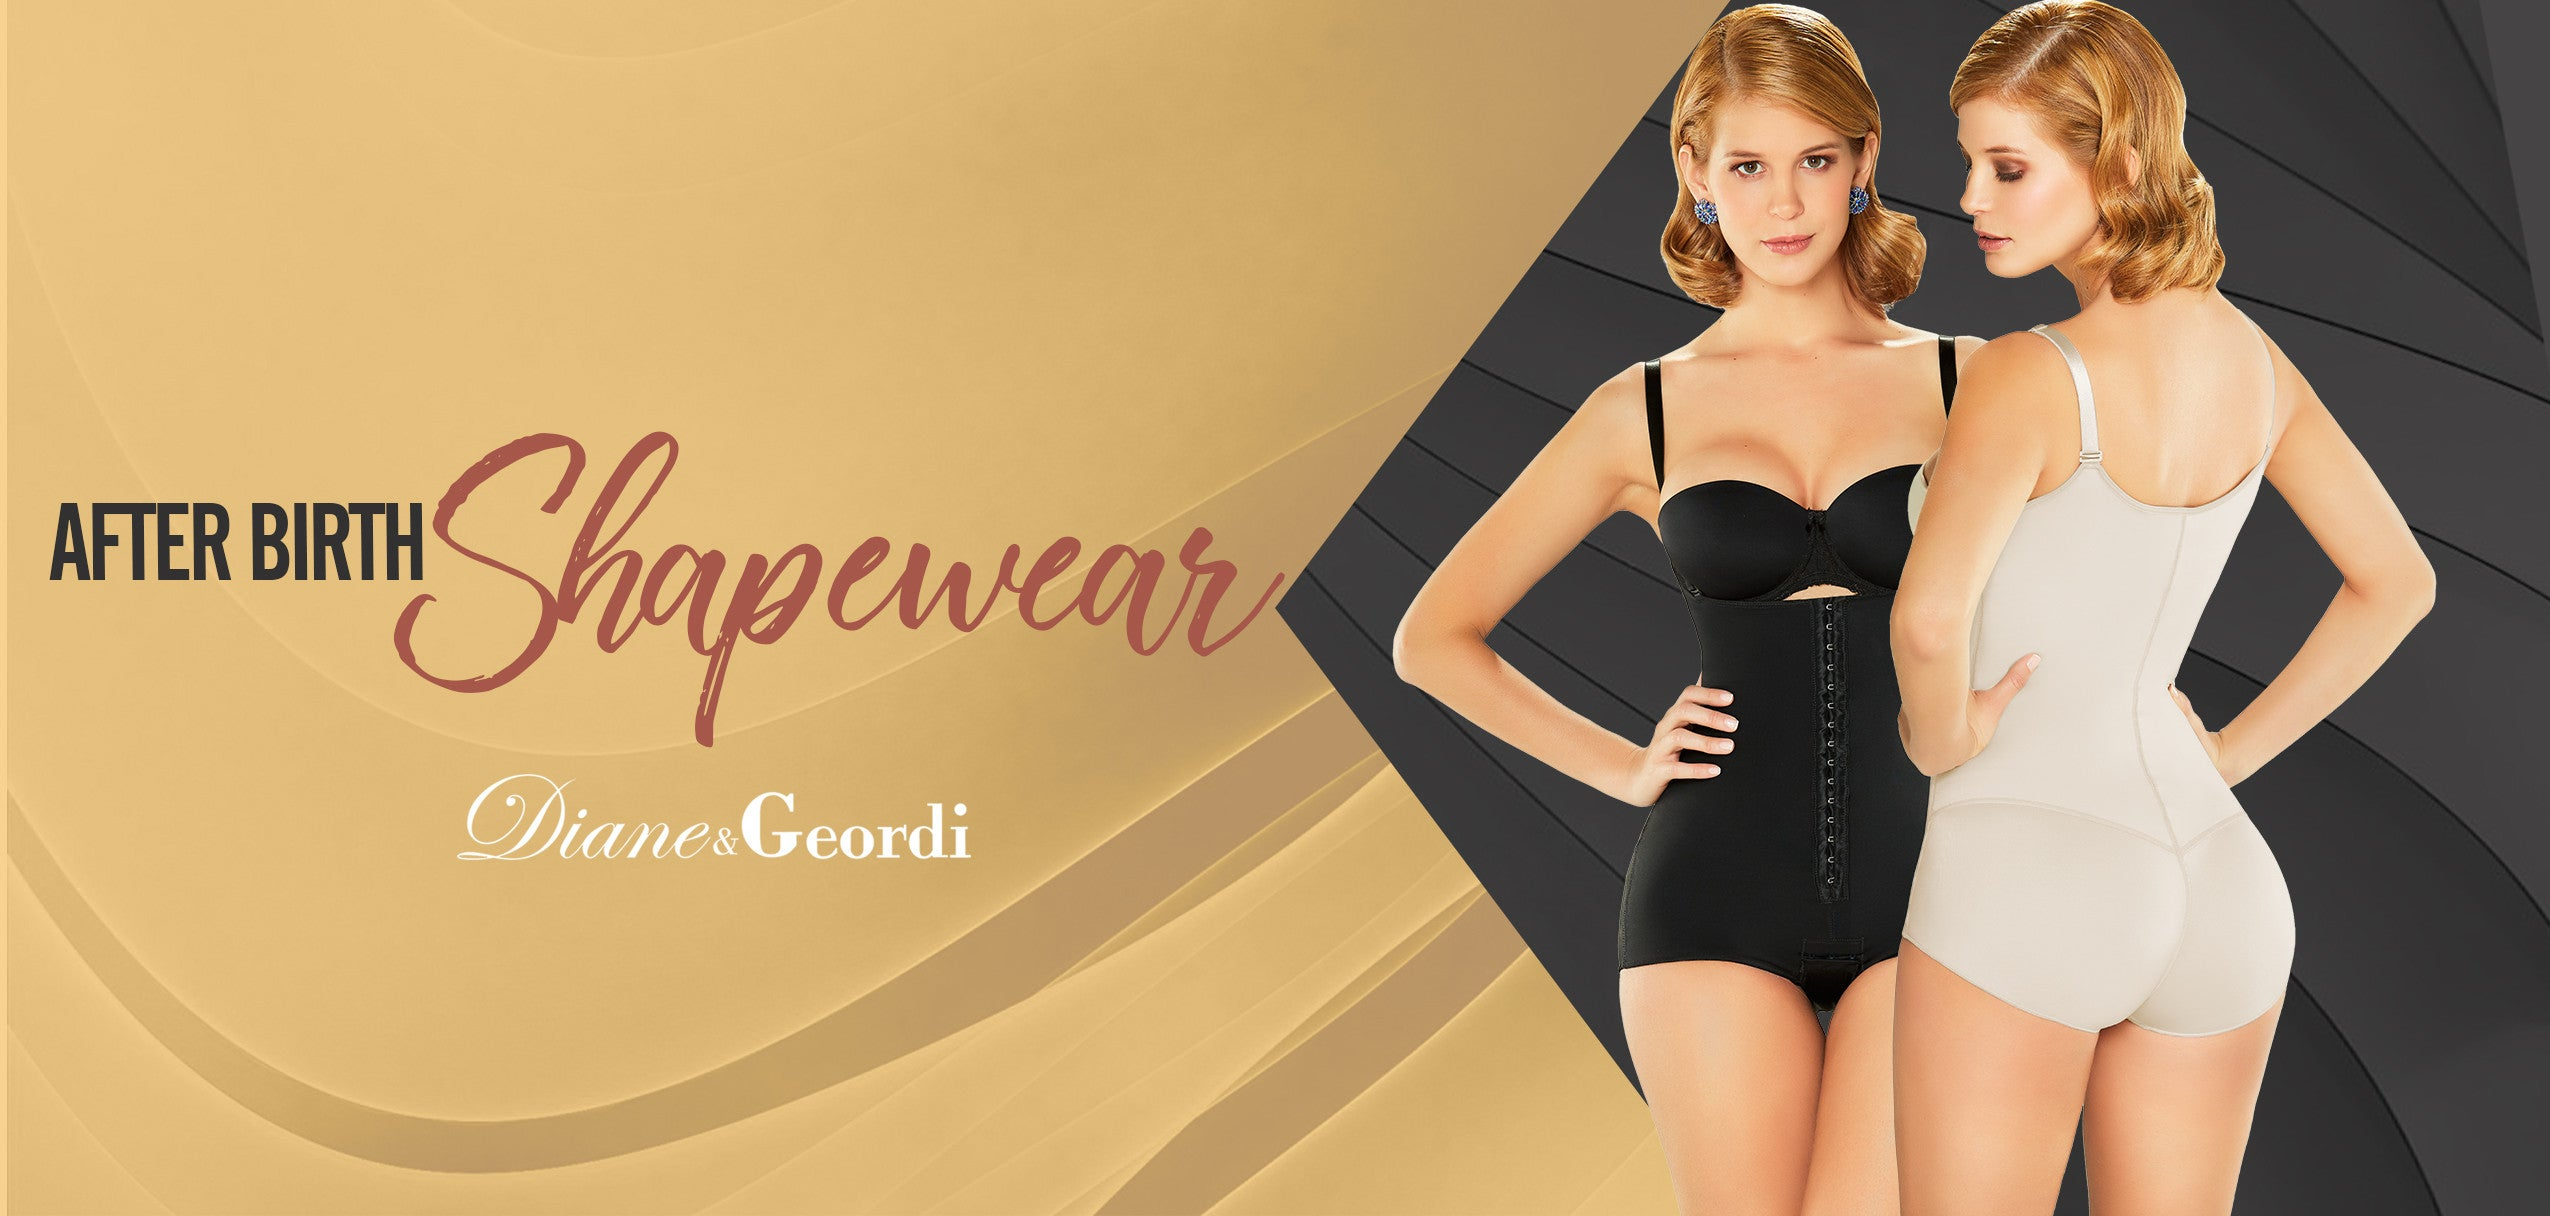 after birth shapewear